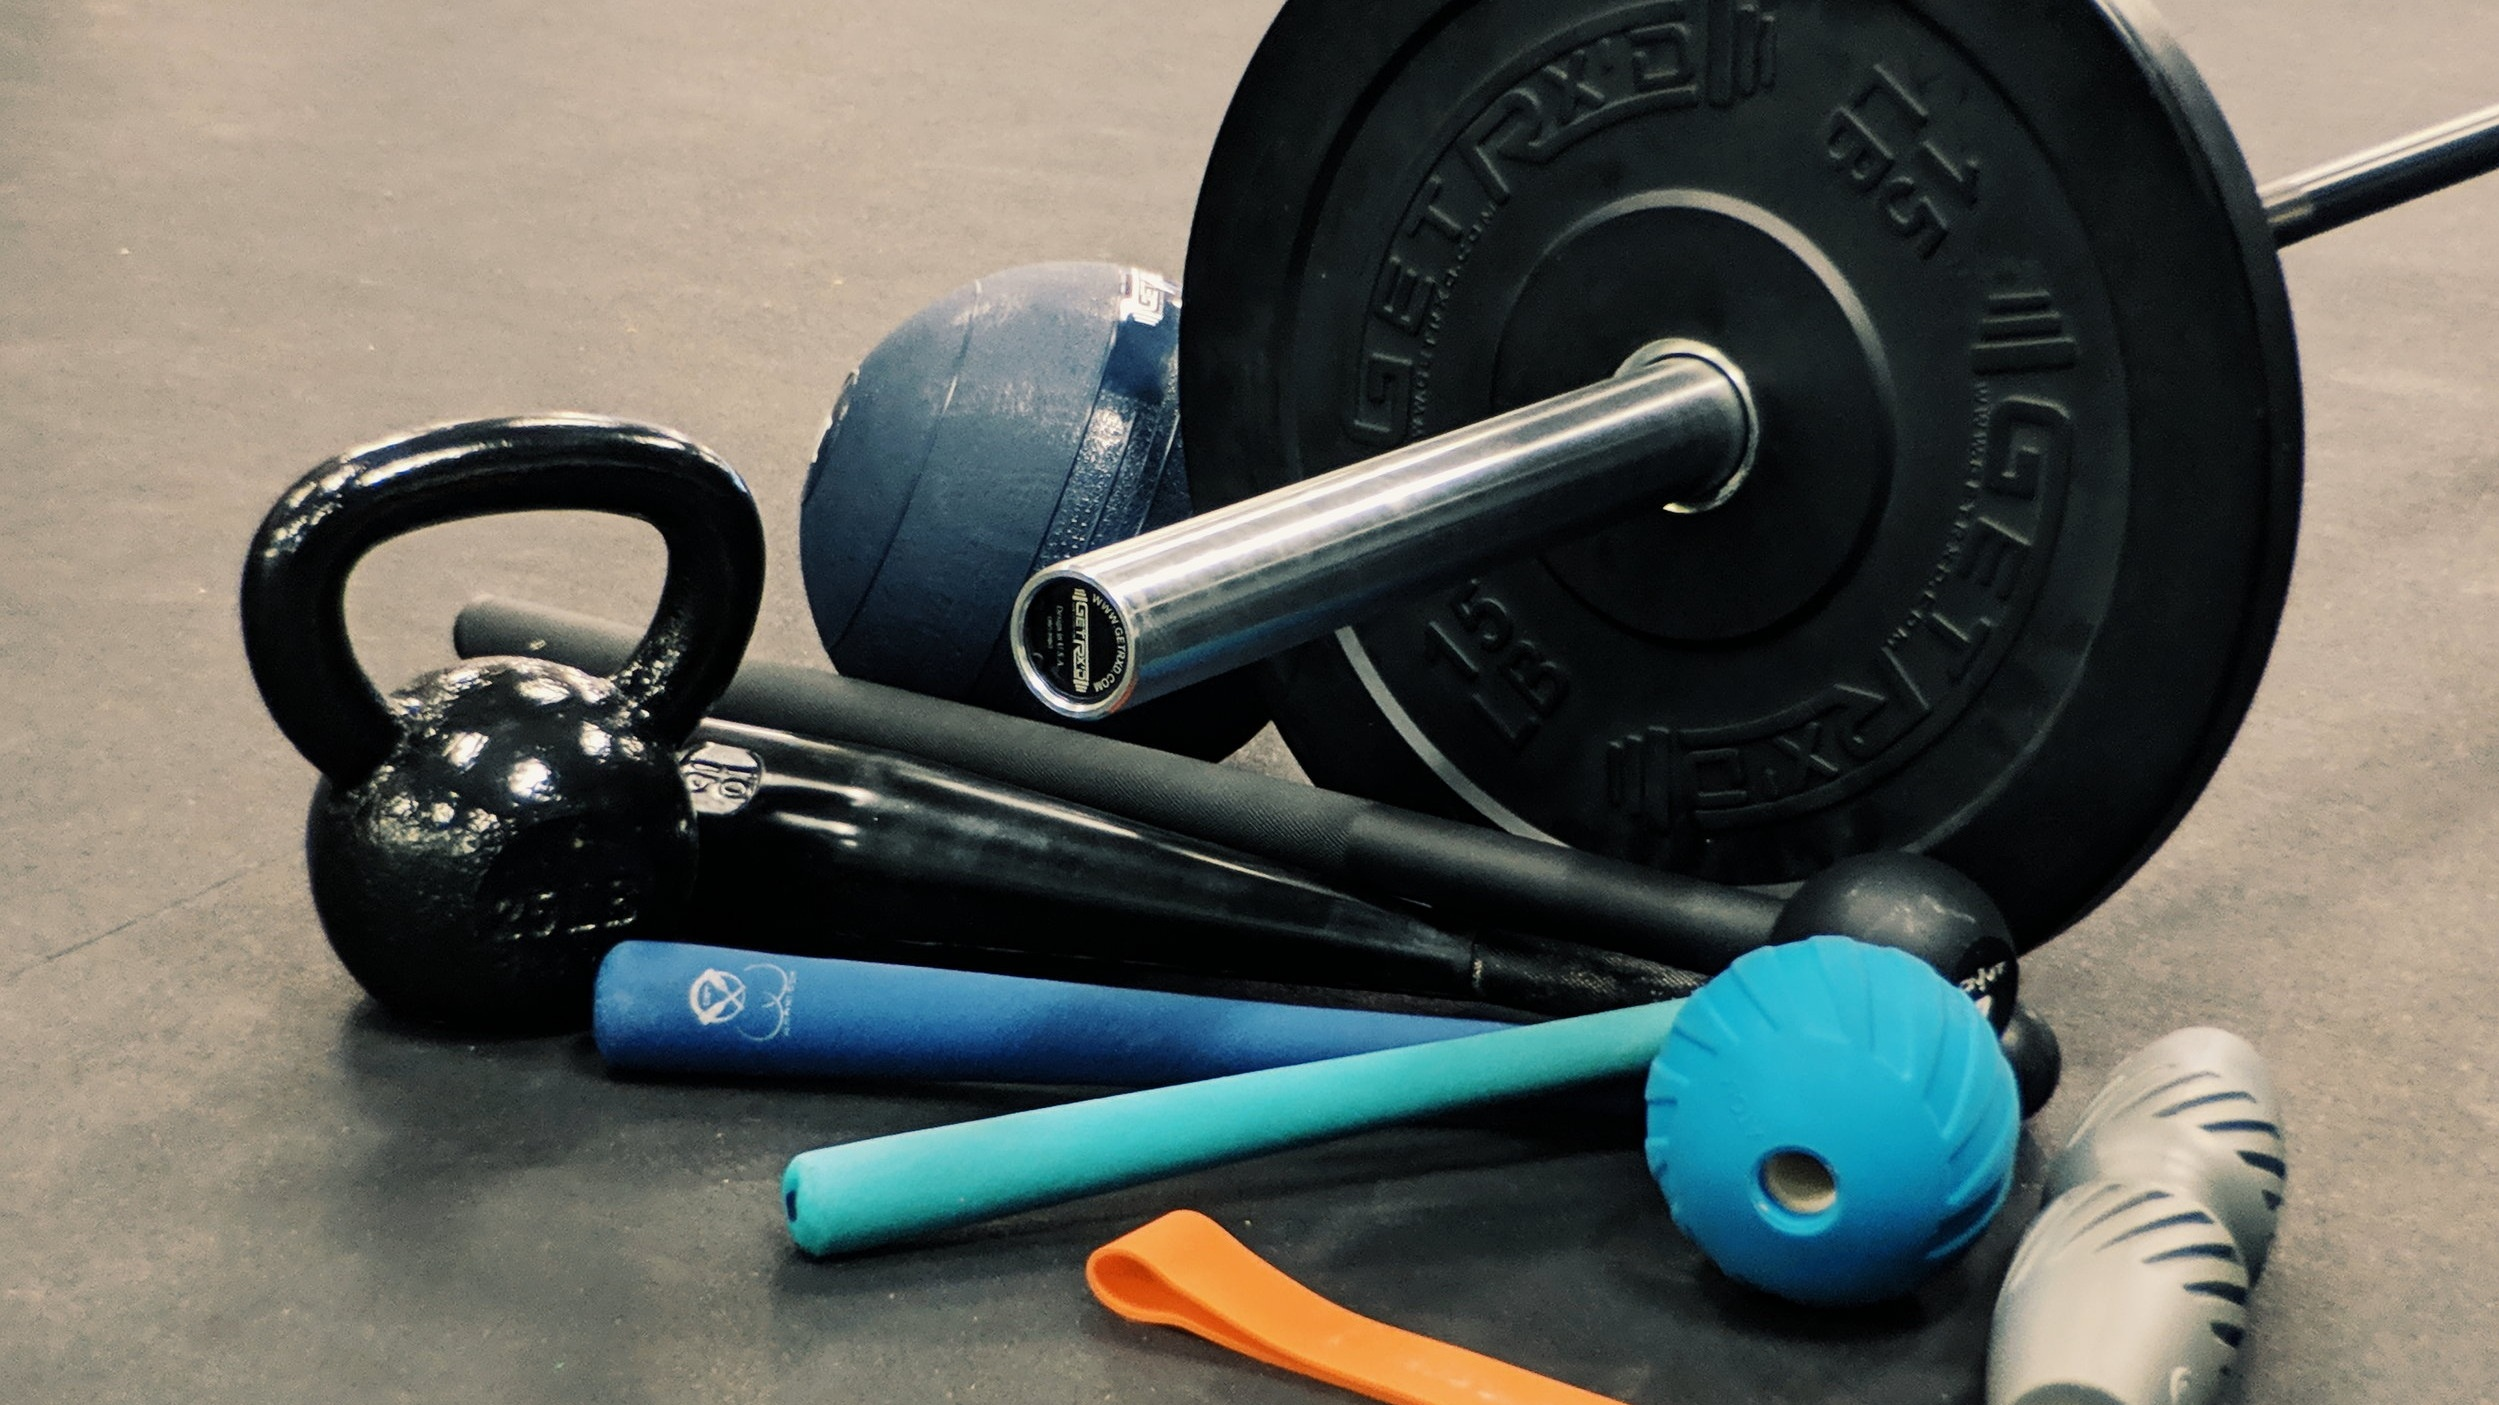 Endurastrong - Endurance + Strength Training. A longer work out allowing you to slow down, lift larger and challenge your endurance. A range of equipment and techniques including barbells, kettlebells, balance tools, calisthenic flows will be used.